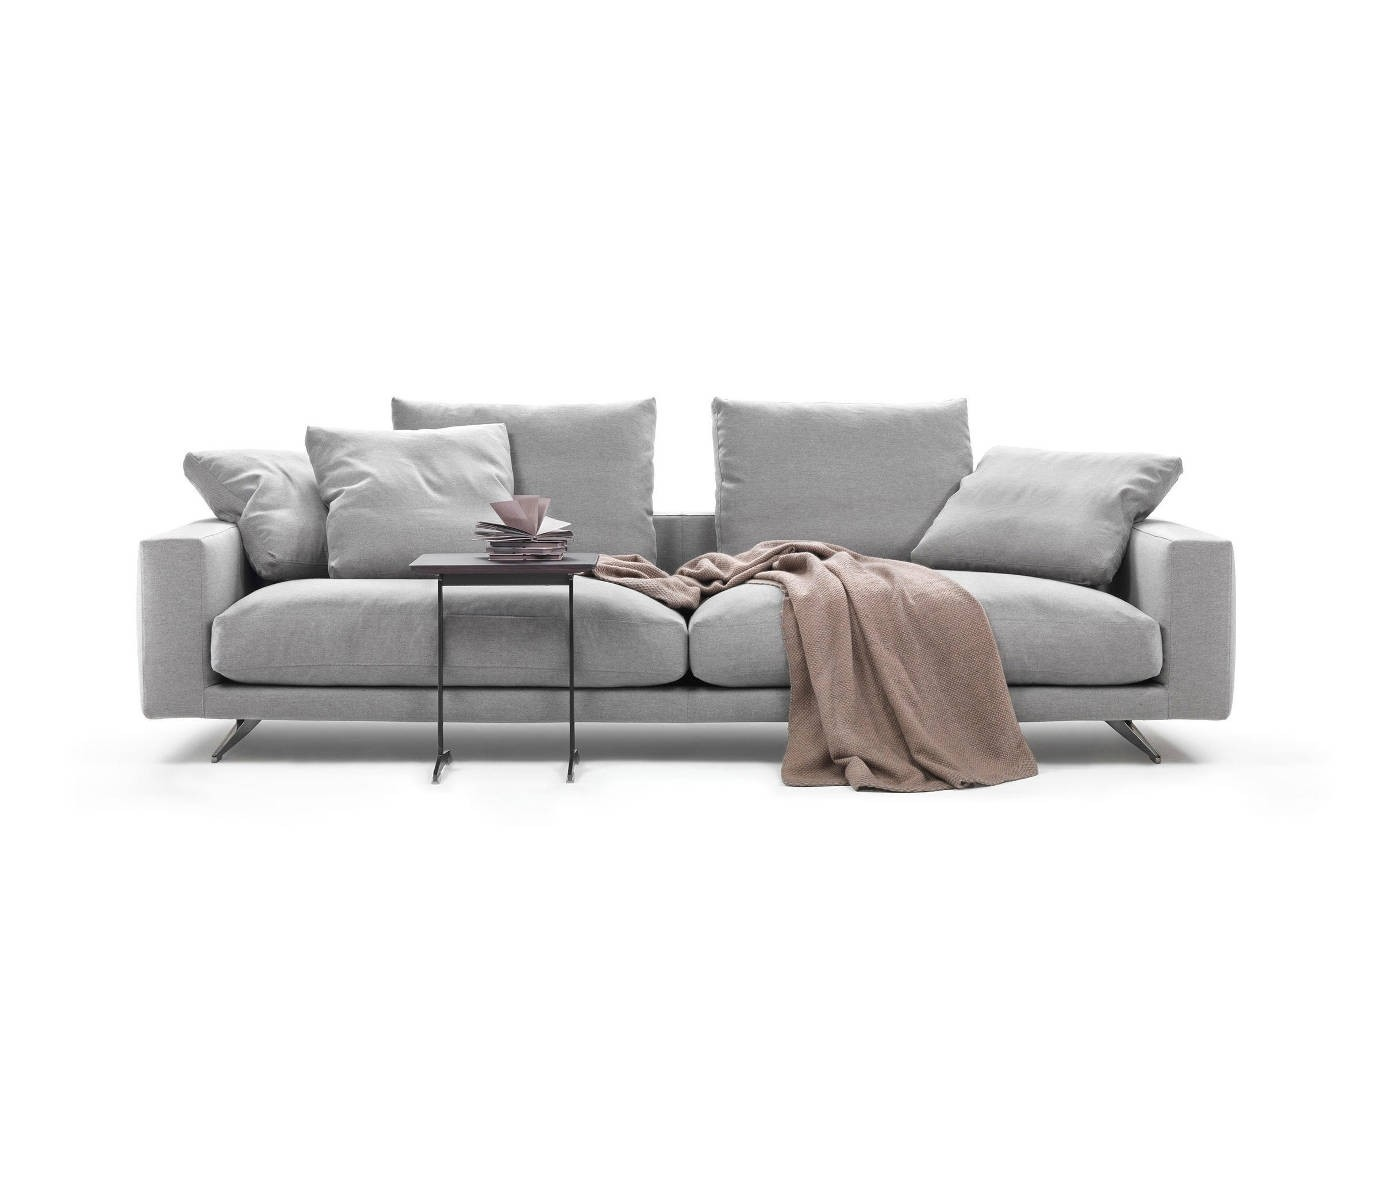 Sofa Quotes Flexform Campiello Sofa